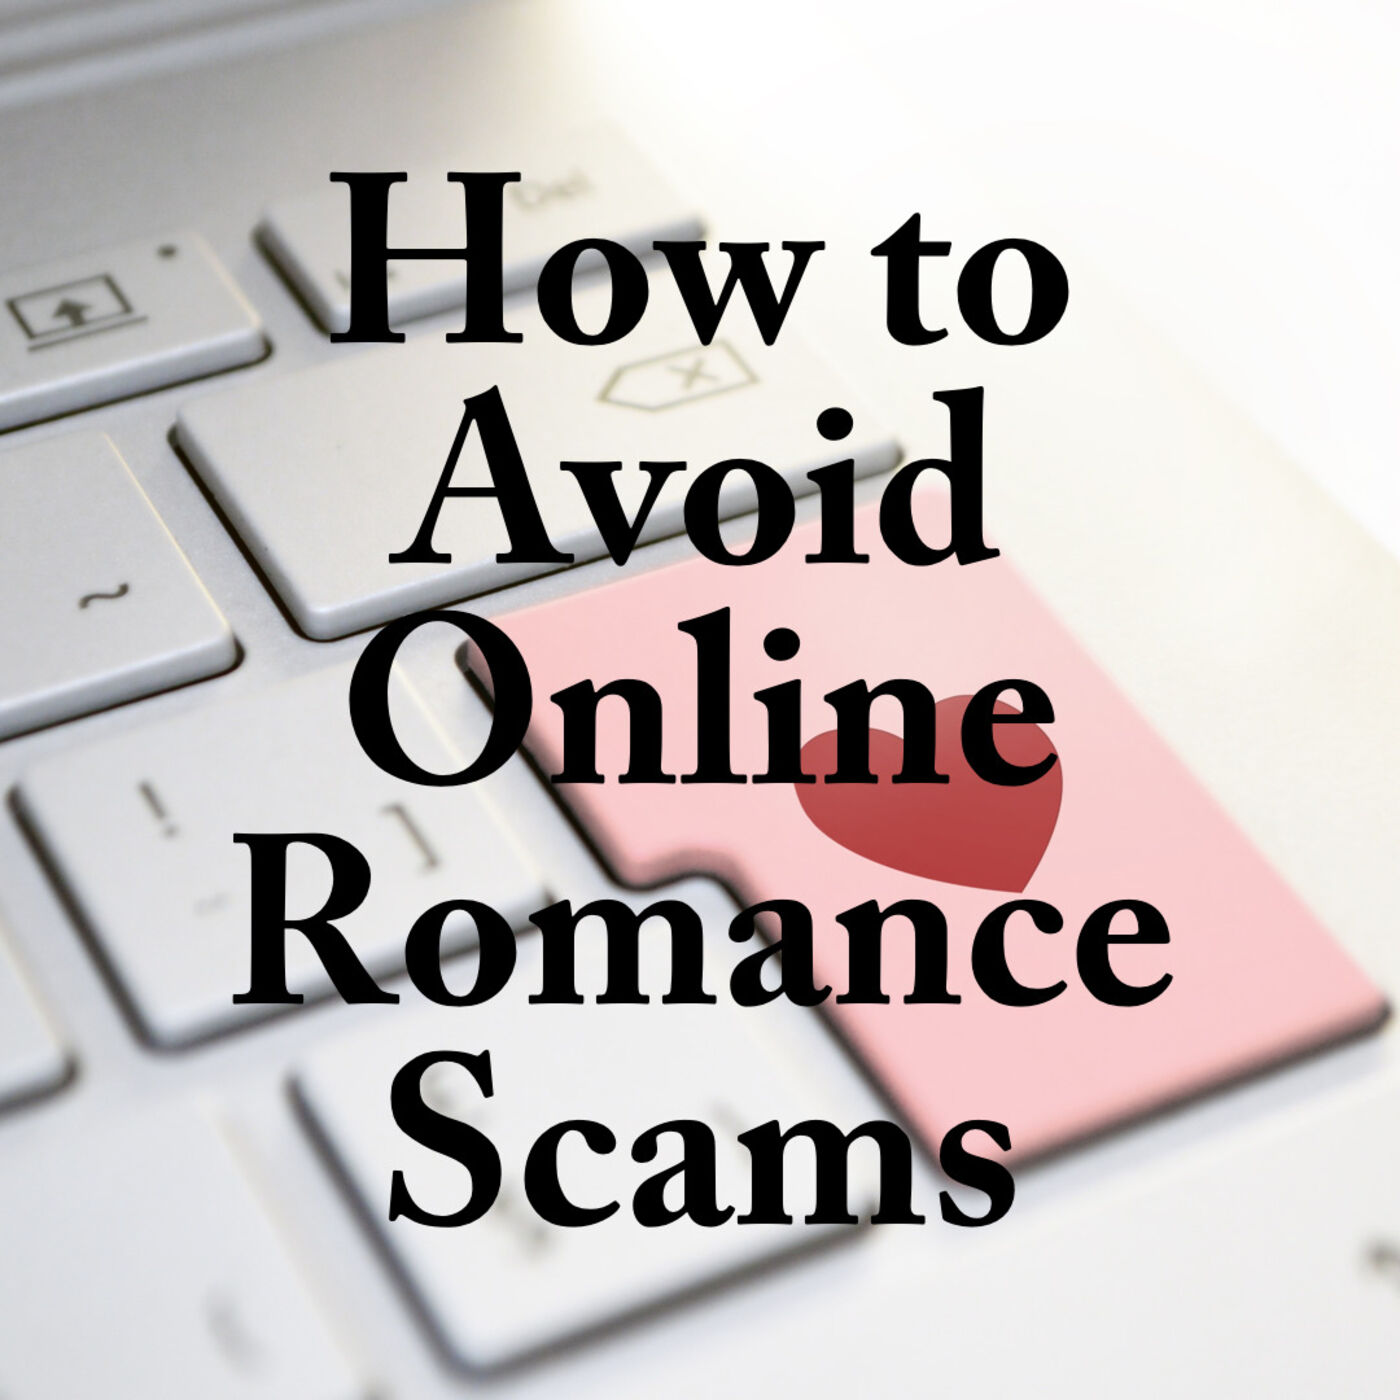 How to Avoid Online Romance Scams